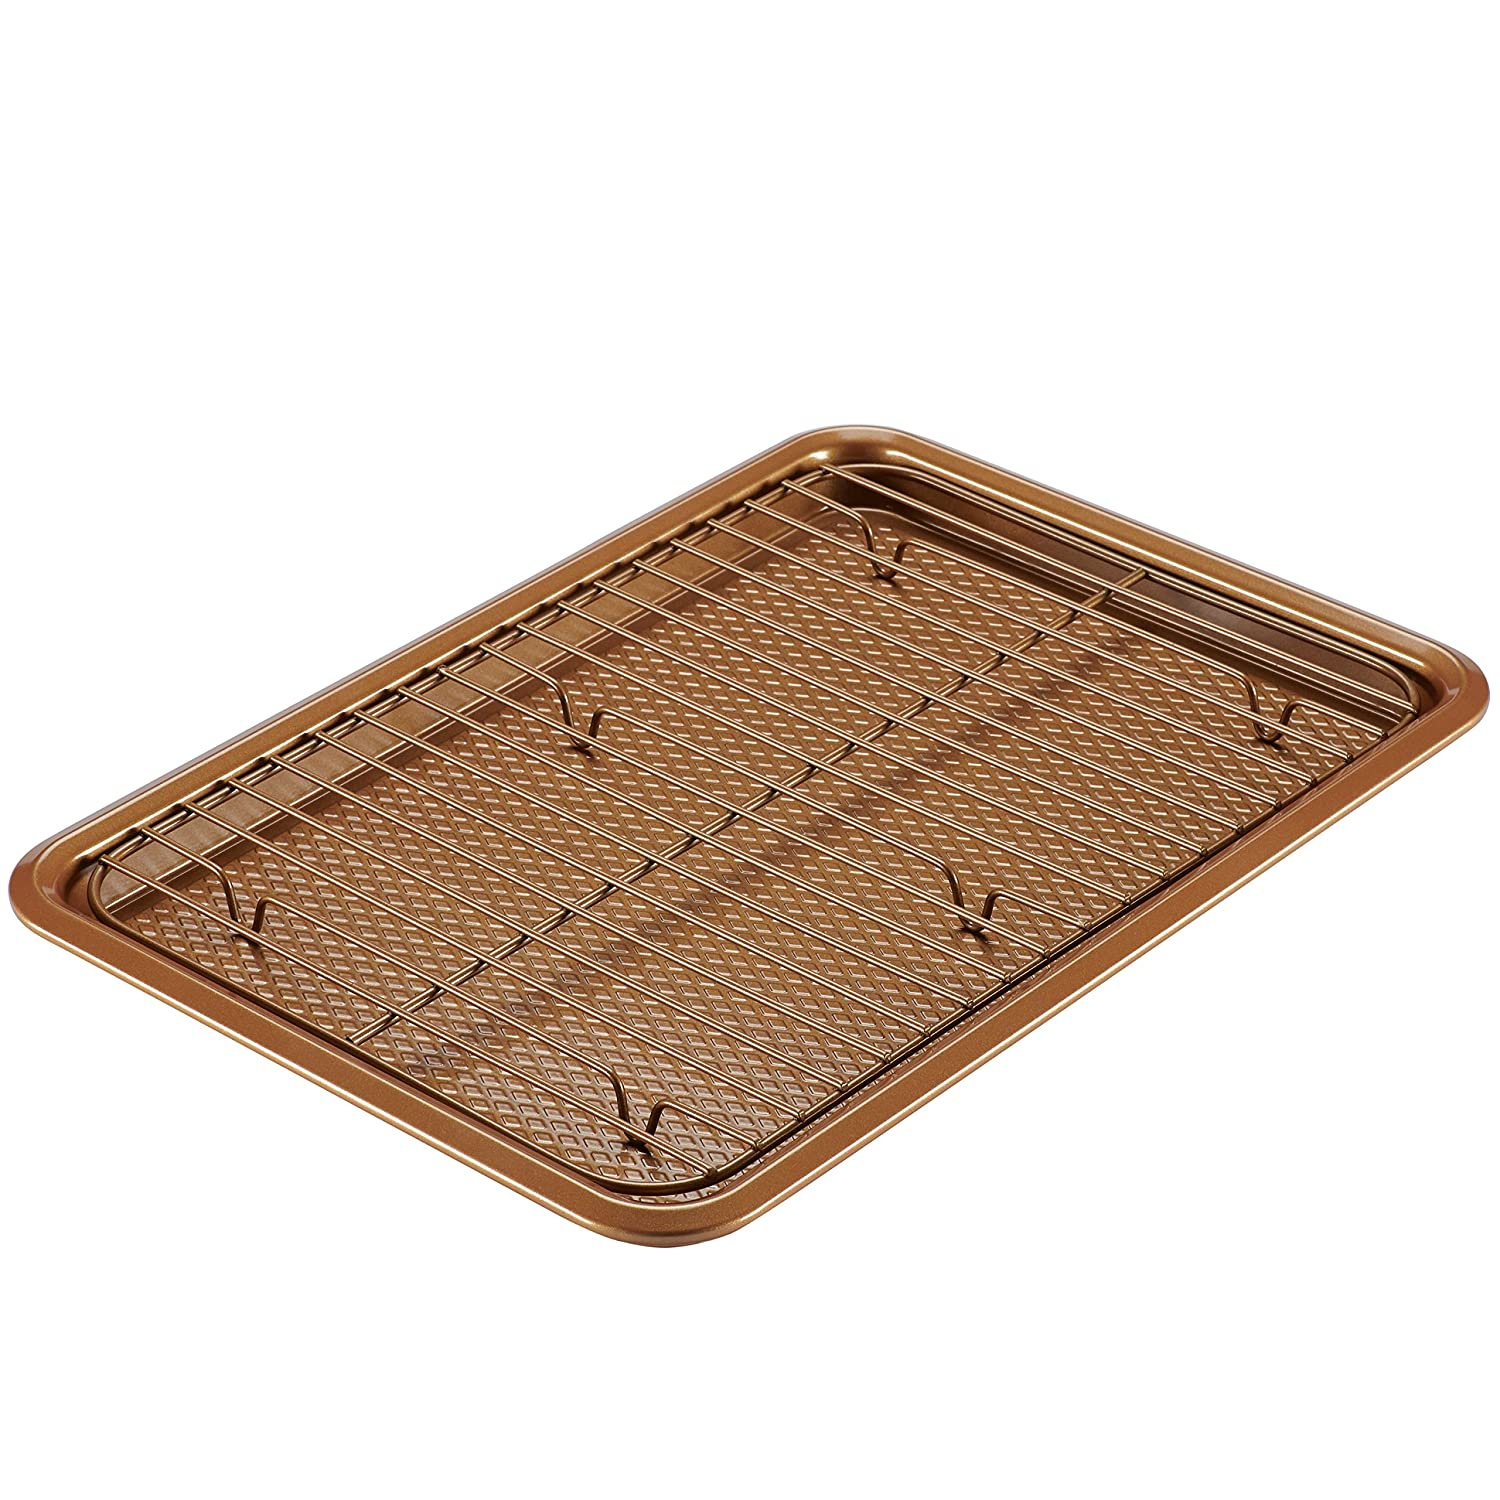 Ayesha Curry 47005 Nonstick Bakeware Set with Nonstick Cookie Sheet / Baking Sheet and Cooling Rack - 2 Piece, Copper Brown